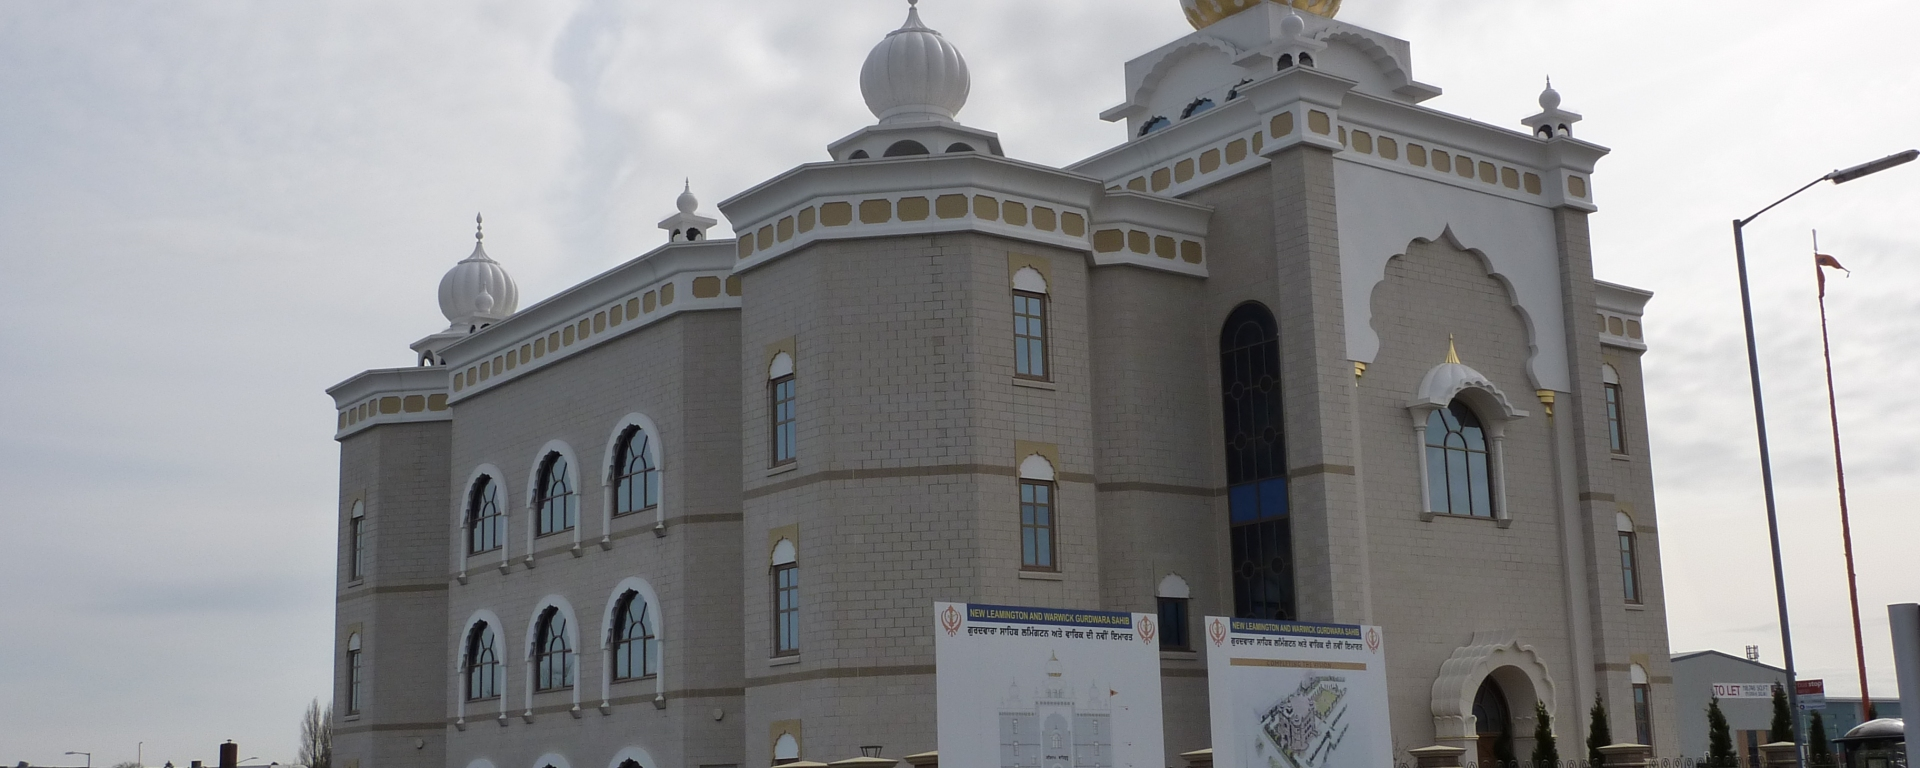 Leamington Spa & Warwick Gurdwara Sahib